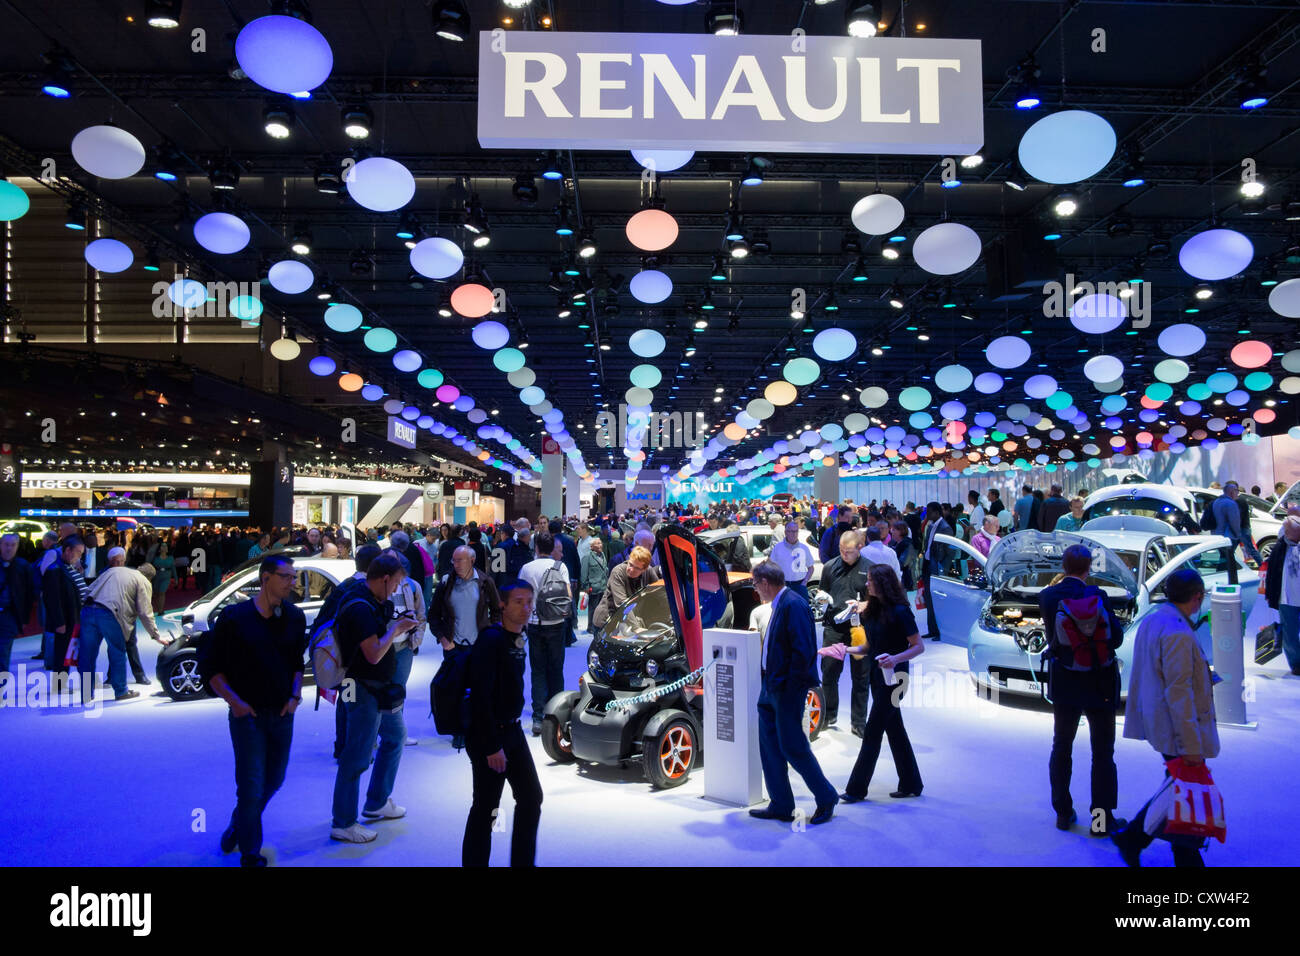 Renault Stock Photos & Renault Stock Images - Alamy